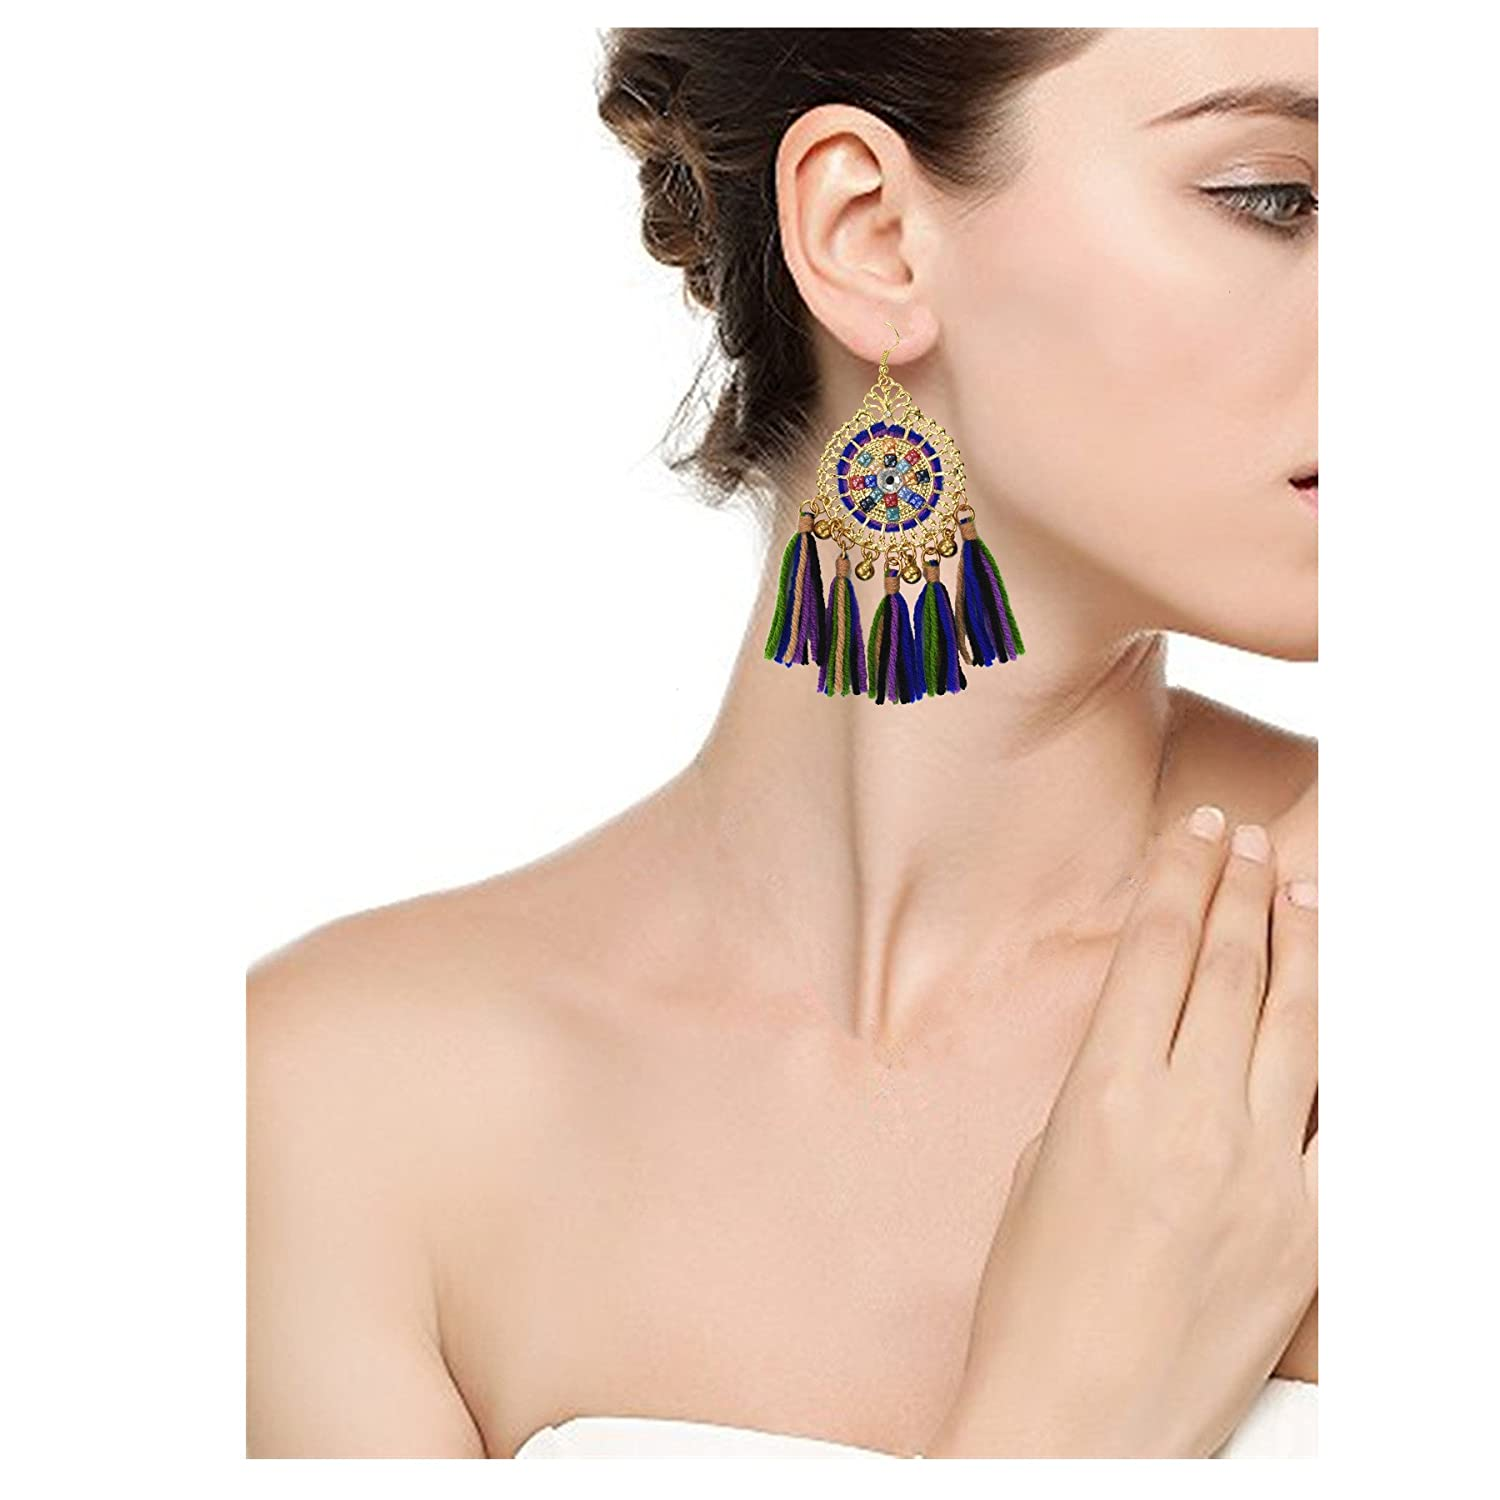 YCYC 2 Pcs Bohemian Tassel Earrings Dangle Drop Thread Fringe Earrings Handmade Eardrop for Women Girls